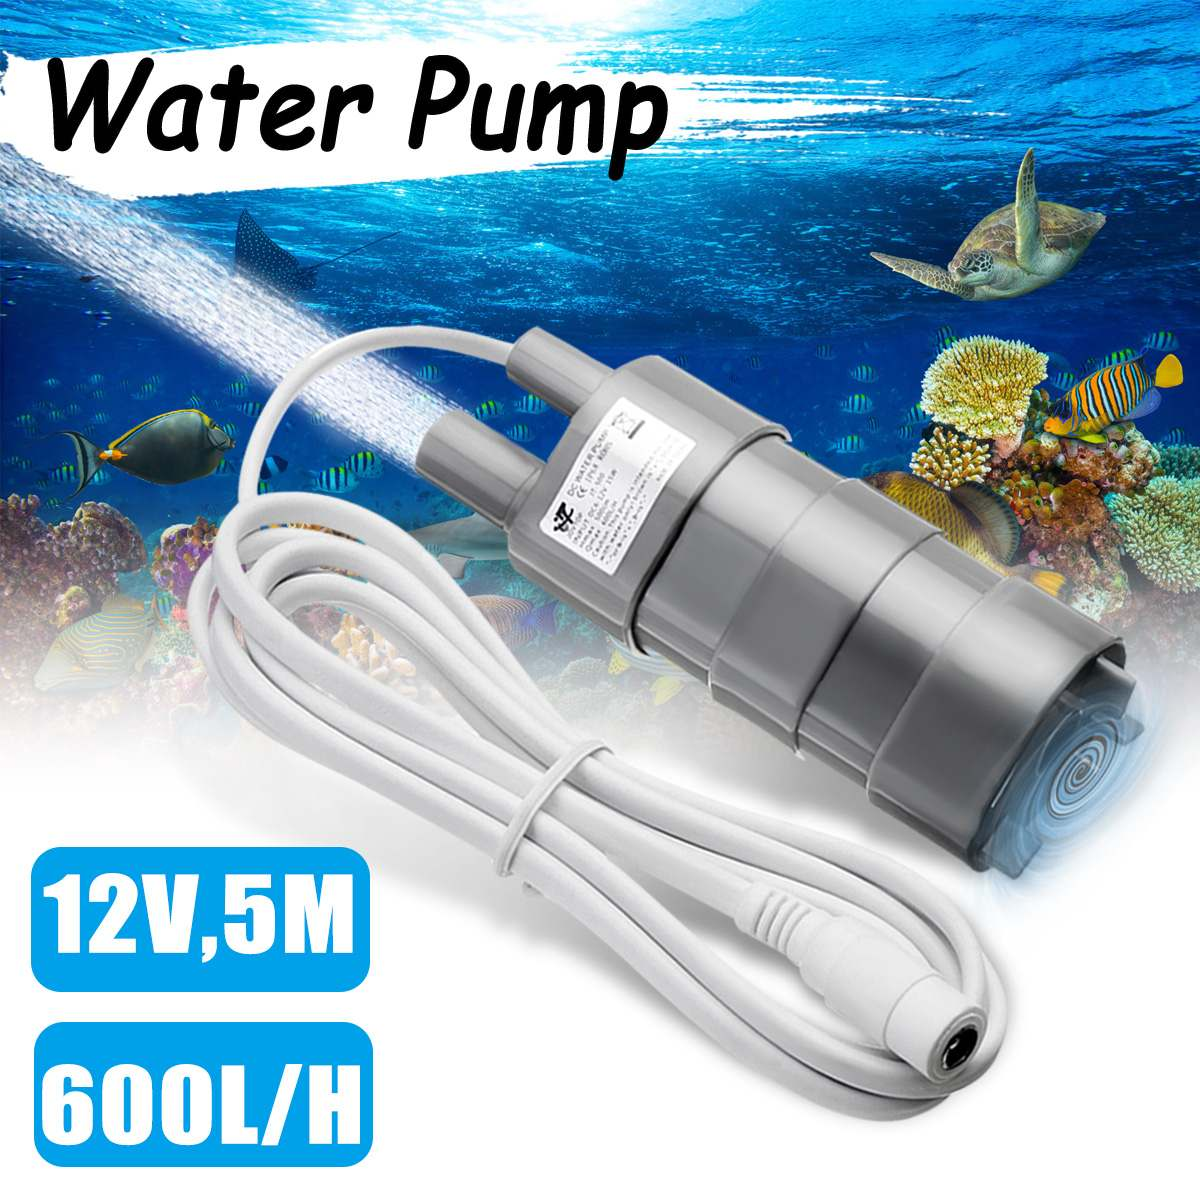 WOLIKE DC 12V Water Pump Brushless Magnetic Submersible Garden Fish Pond 5M 600L/H Micro Submersible Motor Water Pump